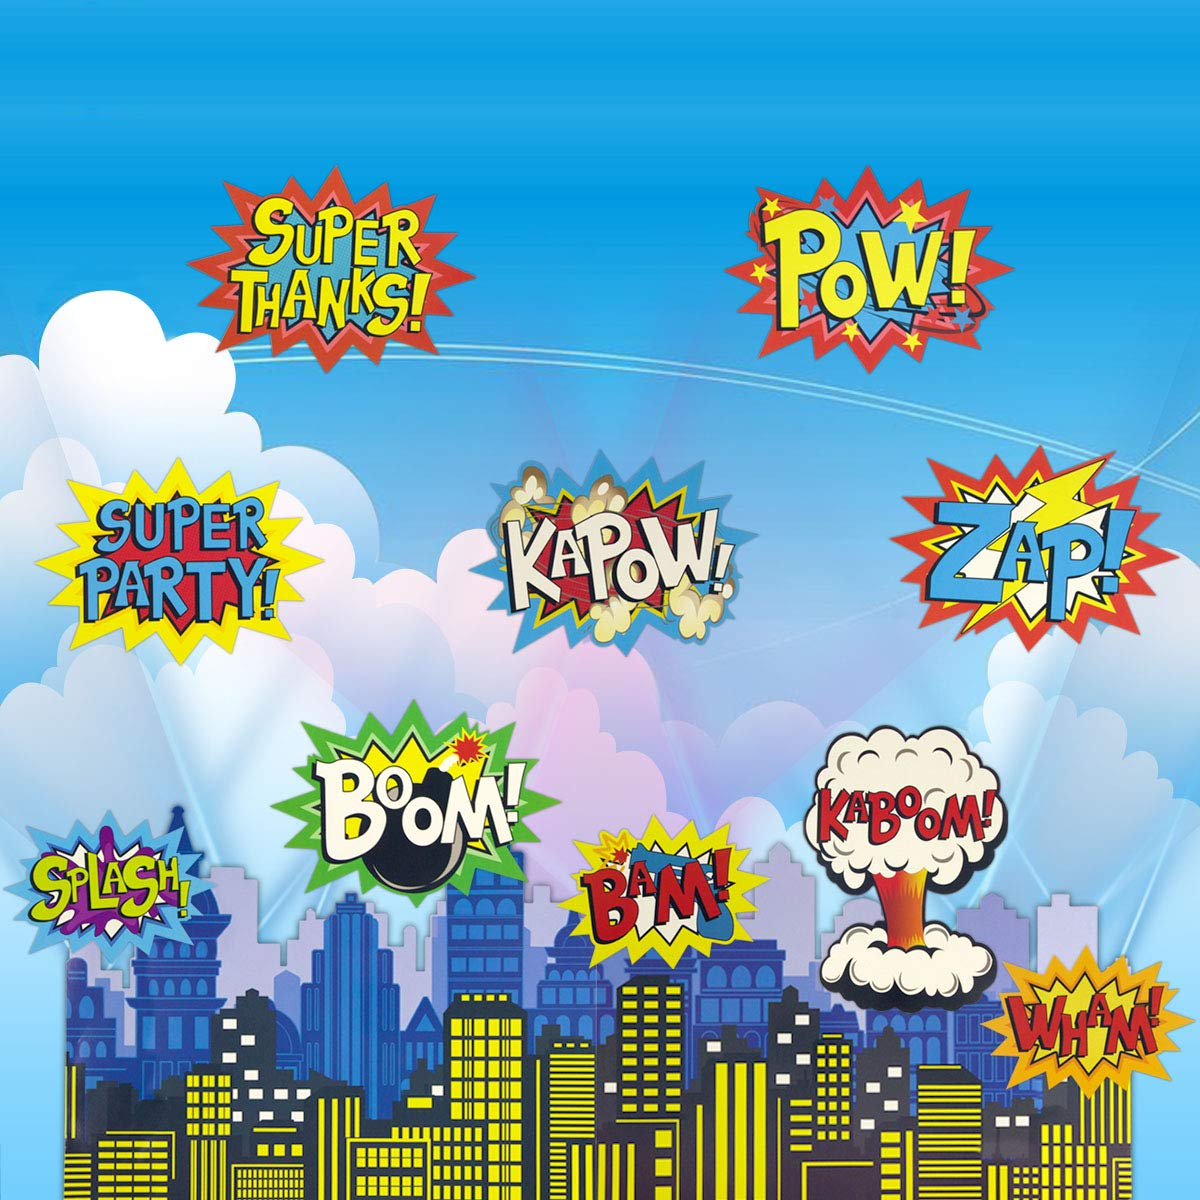 Large Superhero Action Signs Cutouts 12PCS Words and Cityscape Cut-Outs for Party Decoration by Fancy Land (Image #7)